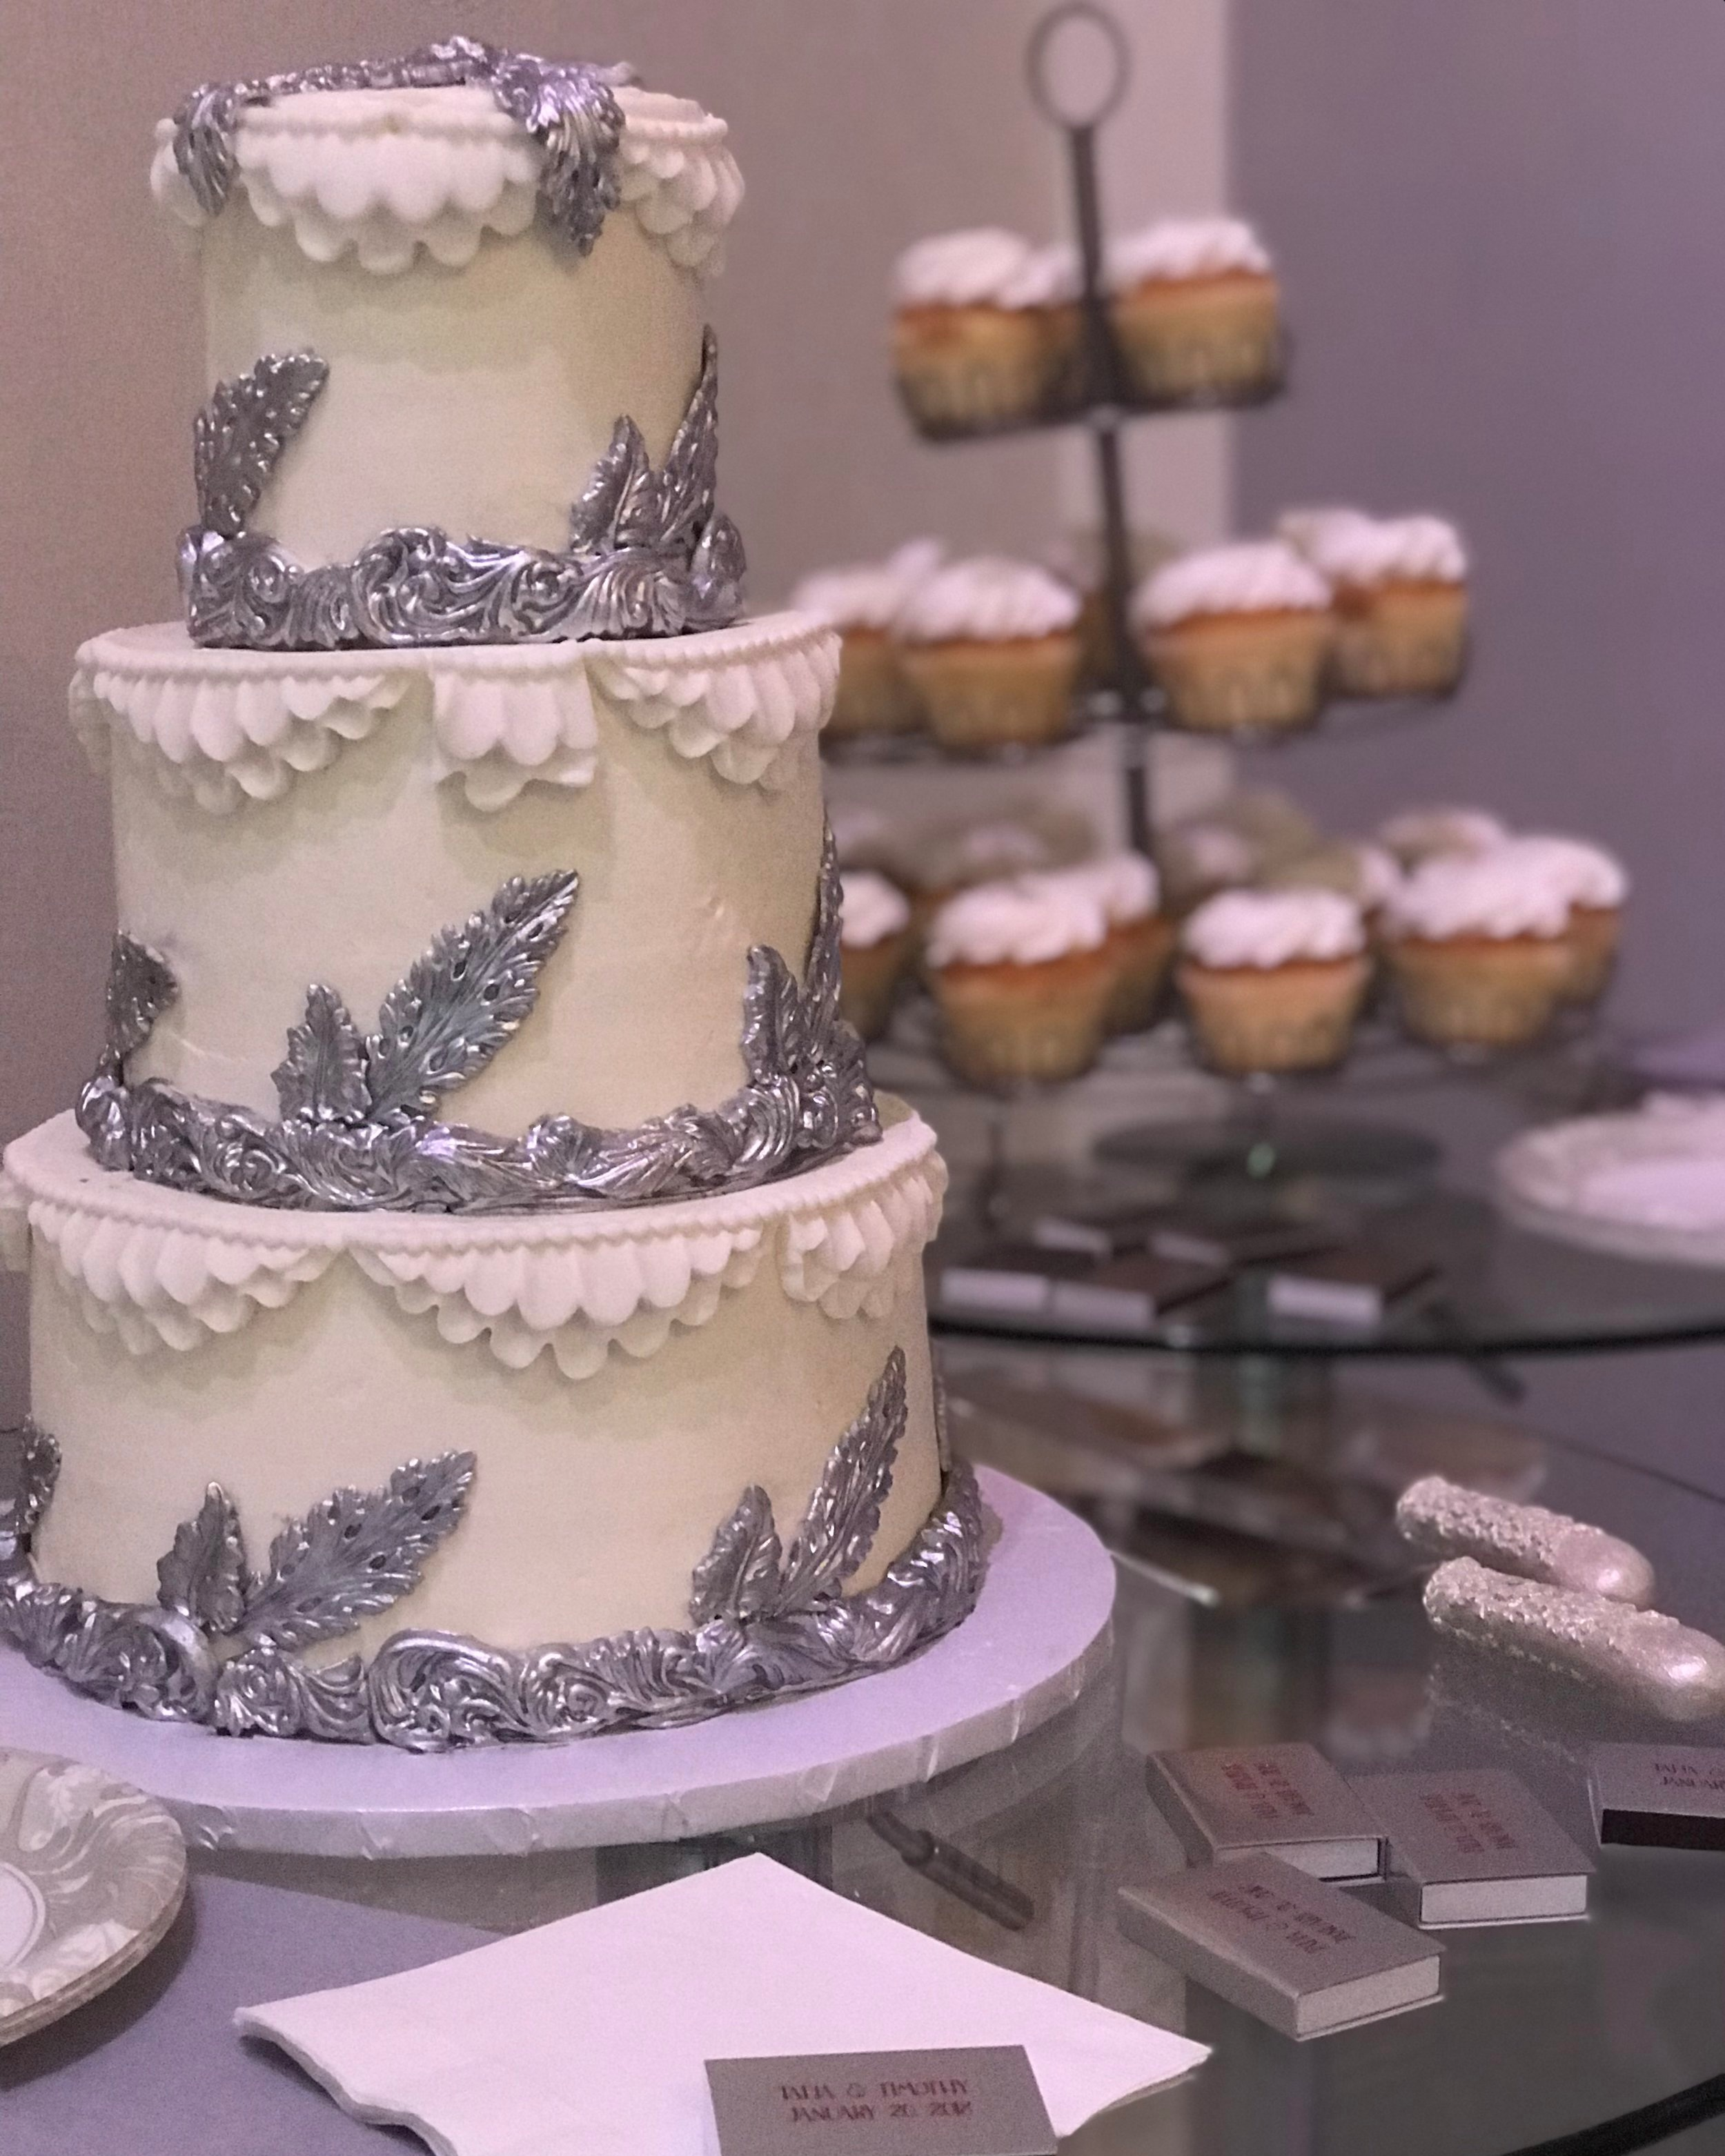 Silver & White Baroque Wedding Cake - Mwokaji Cakery .jpg